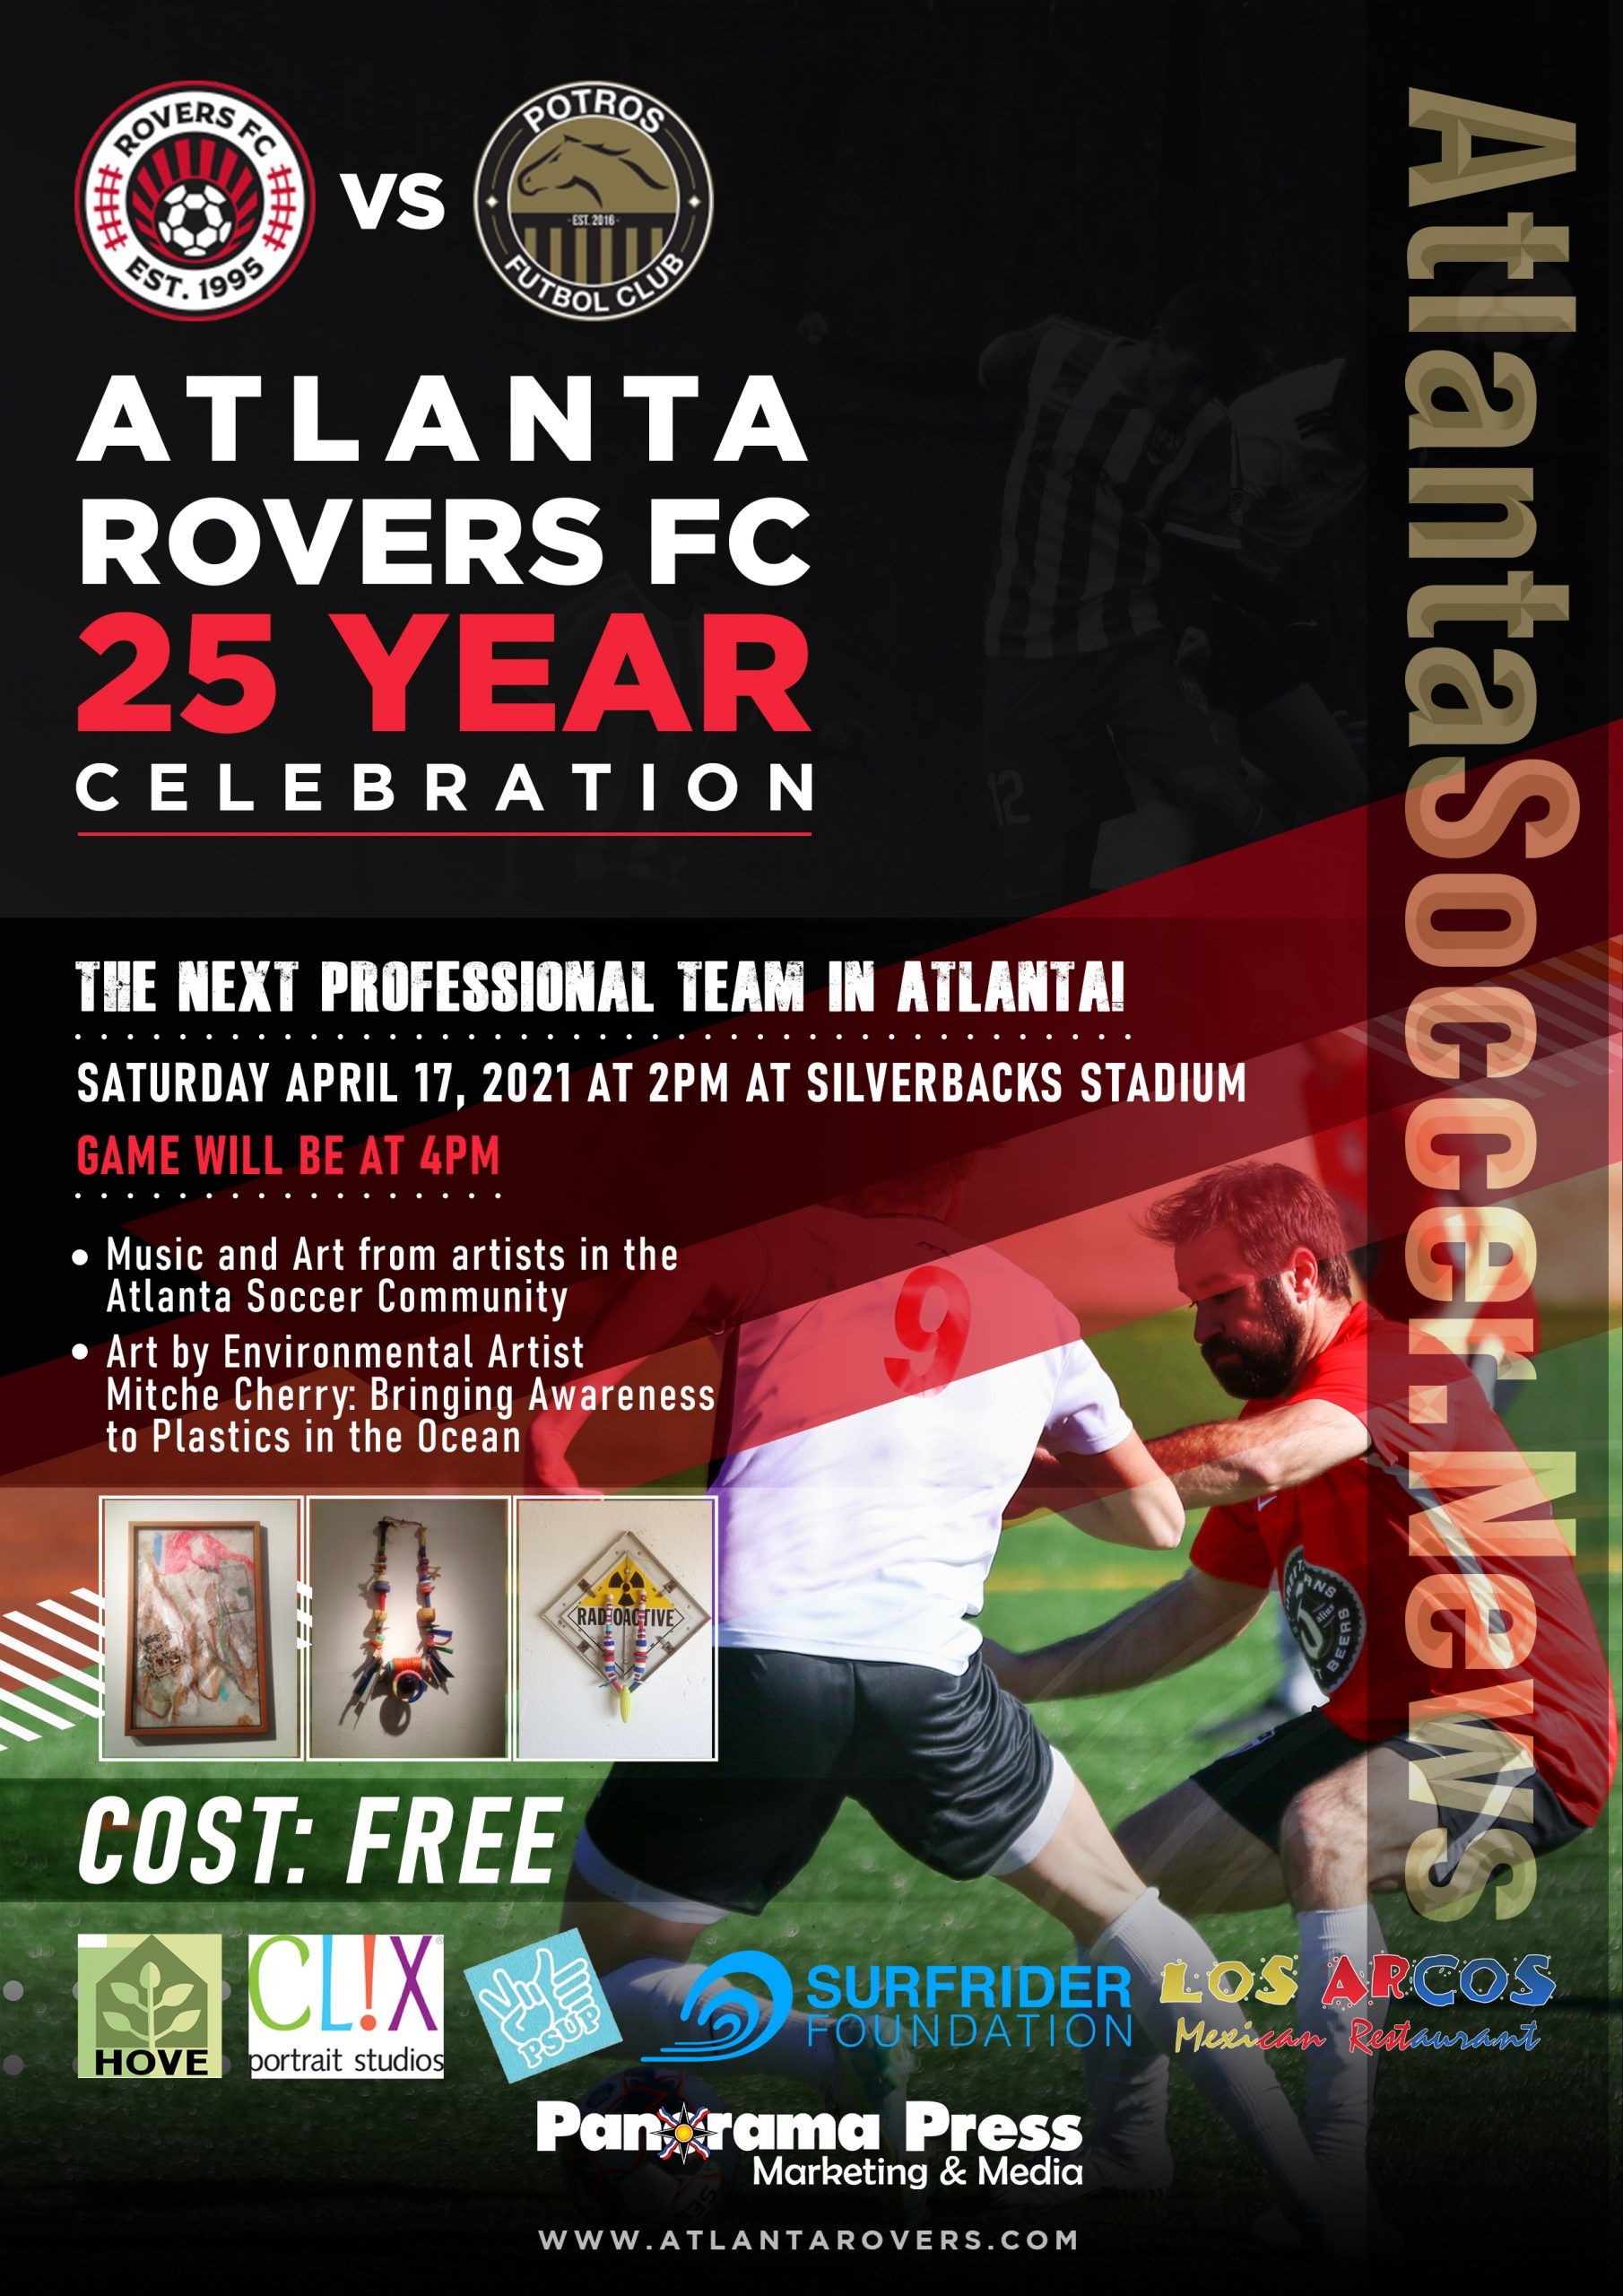 Atlanta Rovers FC 25th Year Celebration